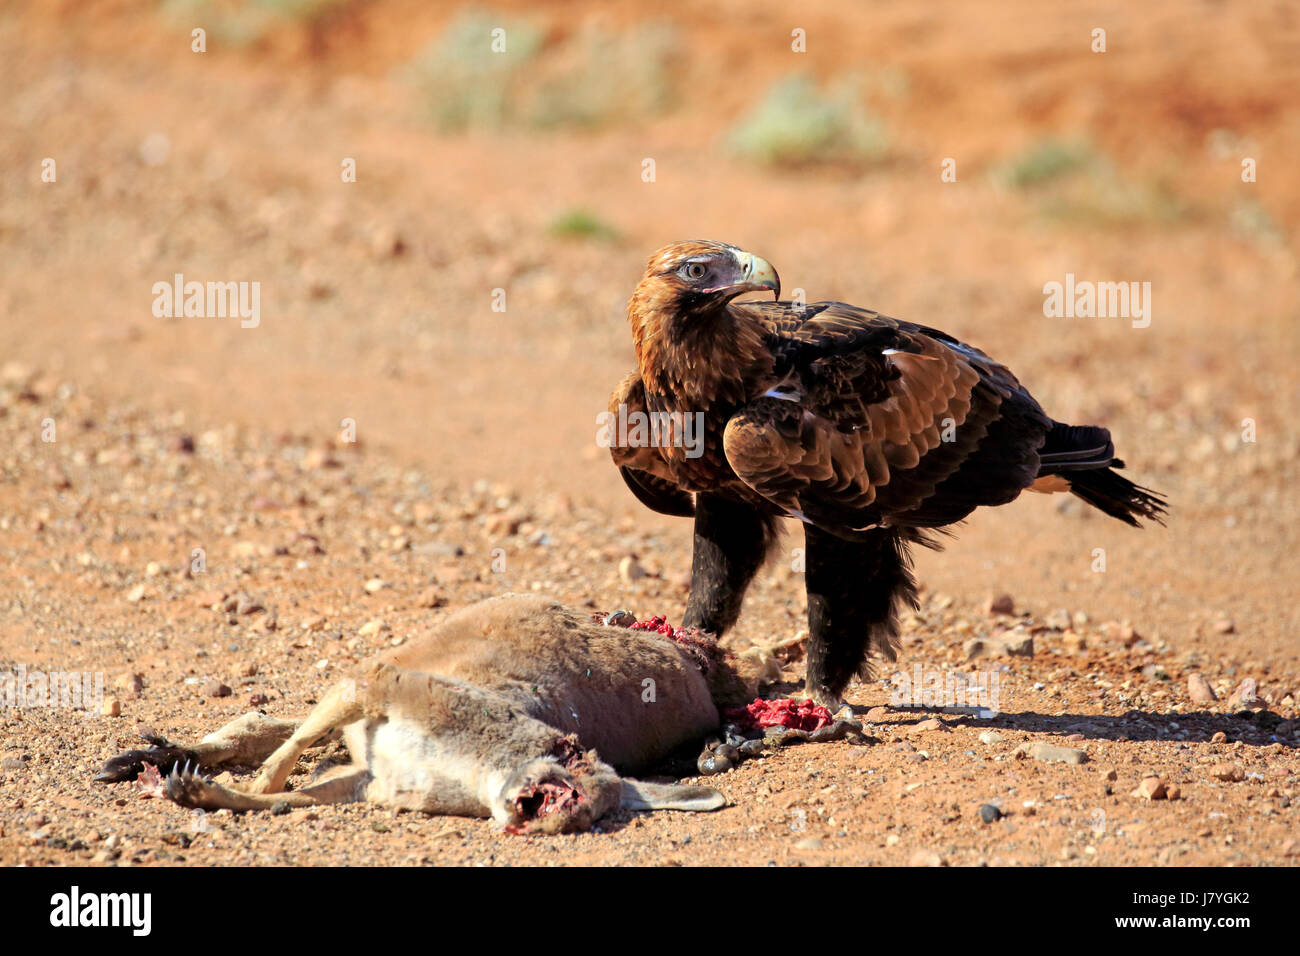 Wedge-tailed eagle (Aquila audax), adult at prey, Sturt National Park, New South Wales, Australia - Stock Image